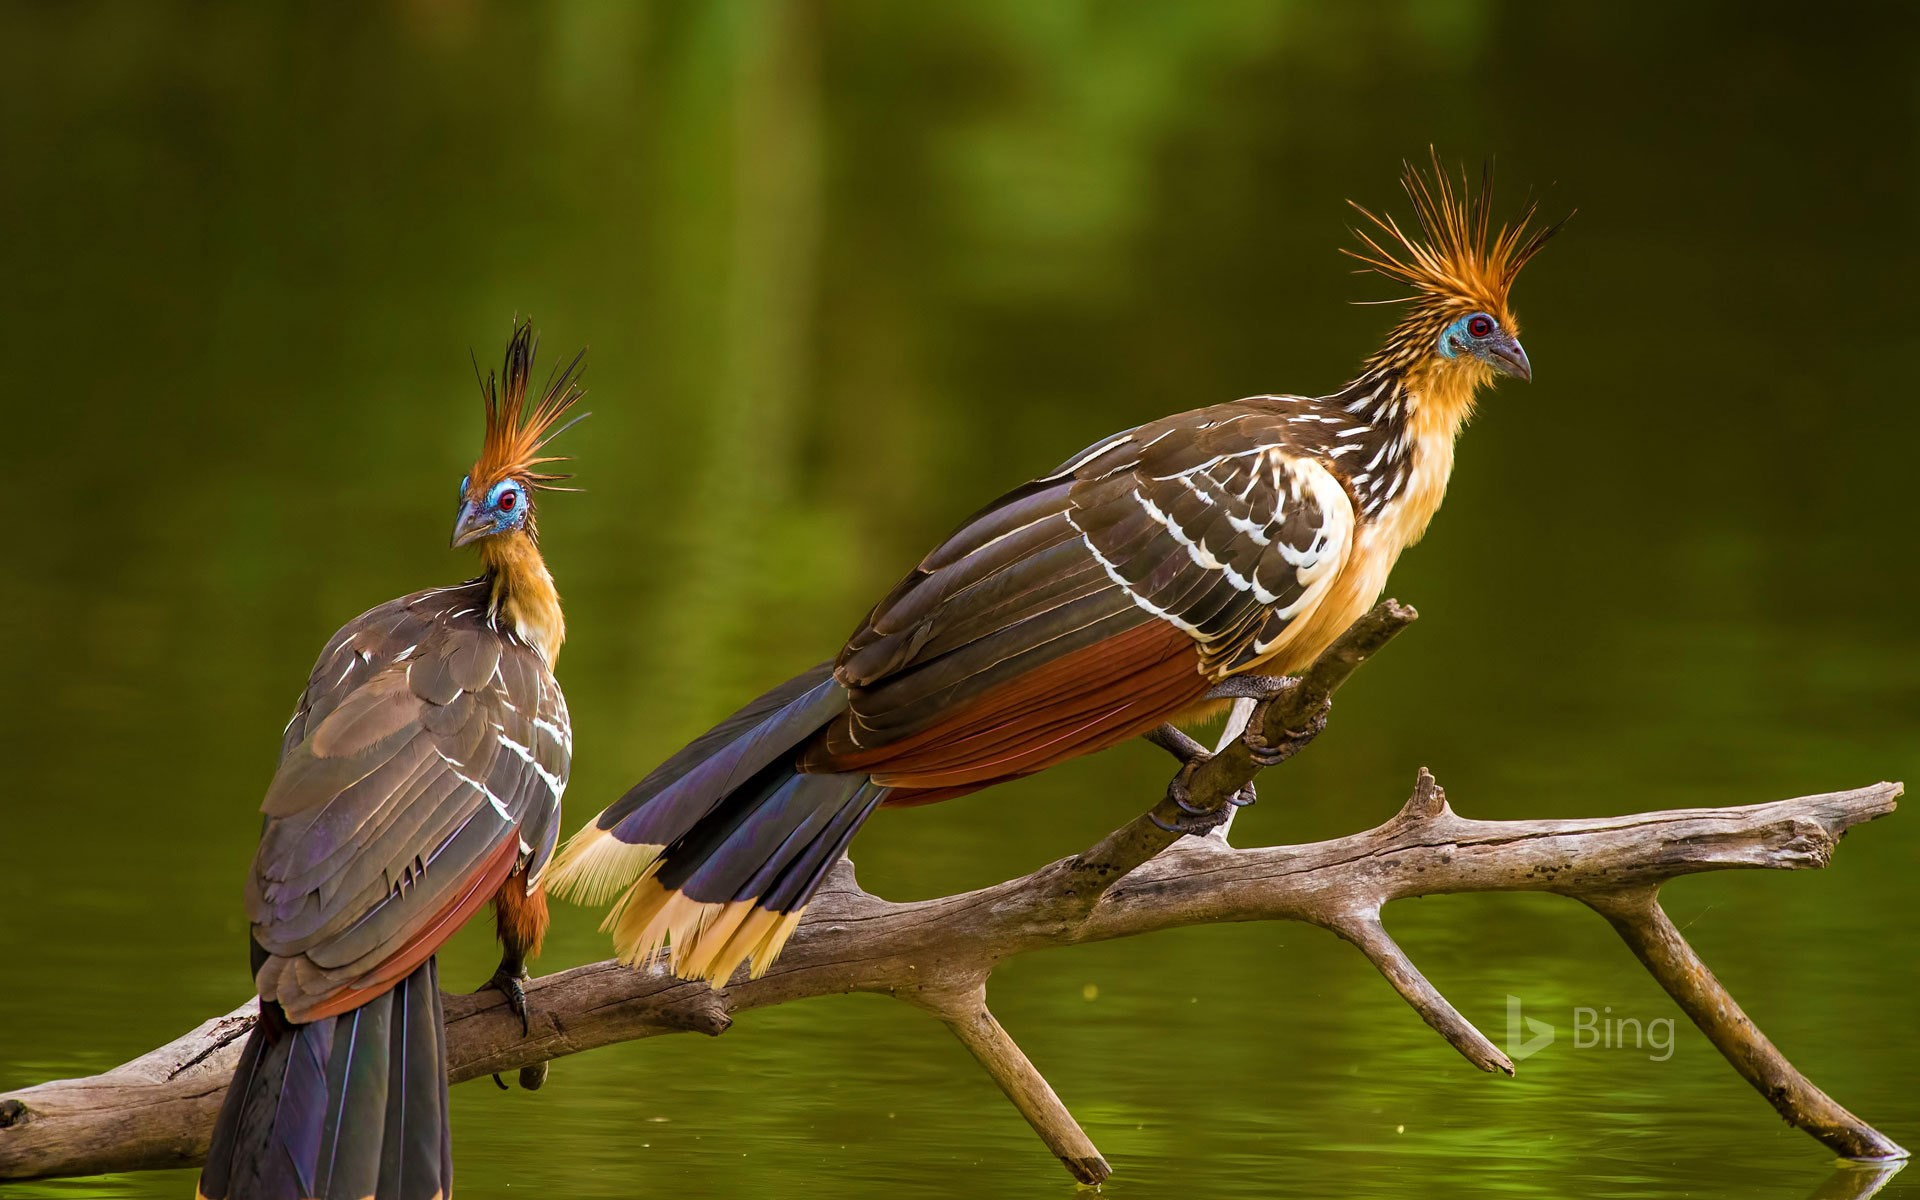 Two hoatzins, perched in Brazil